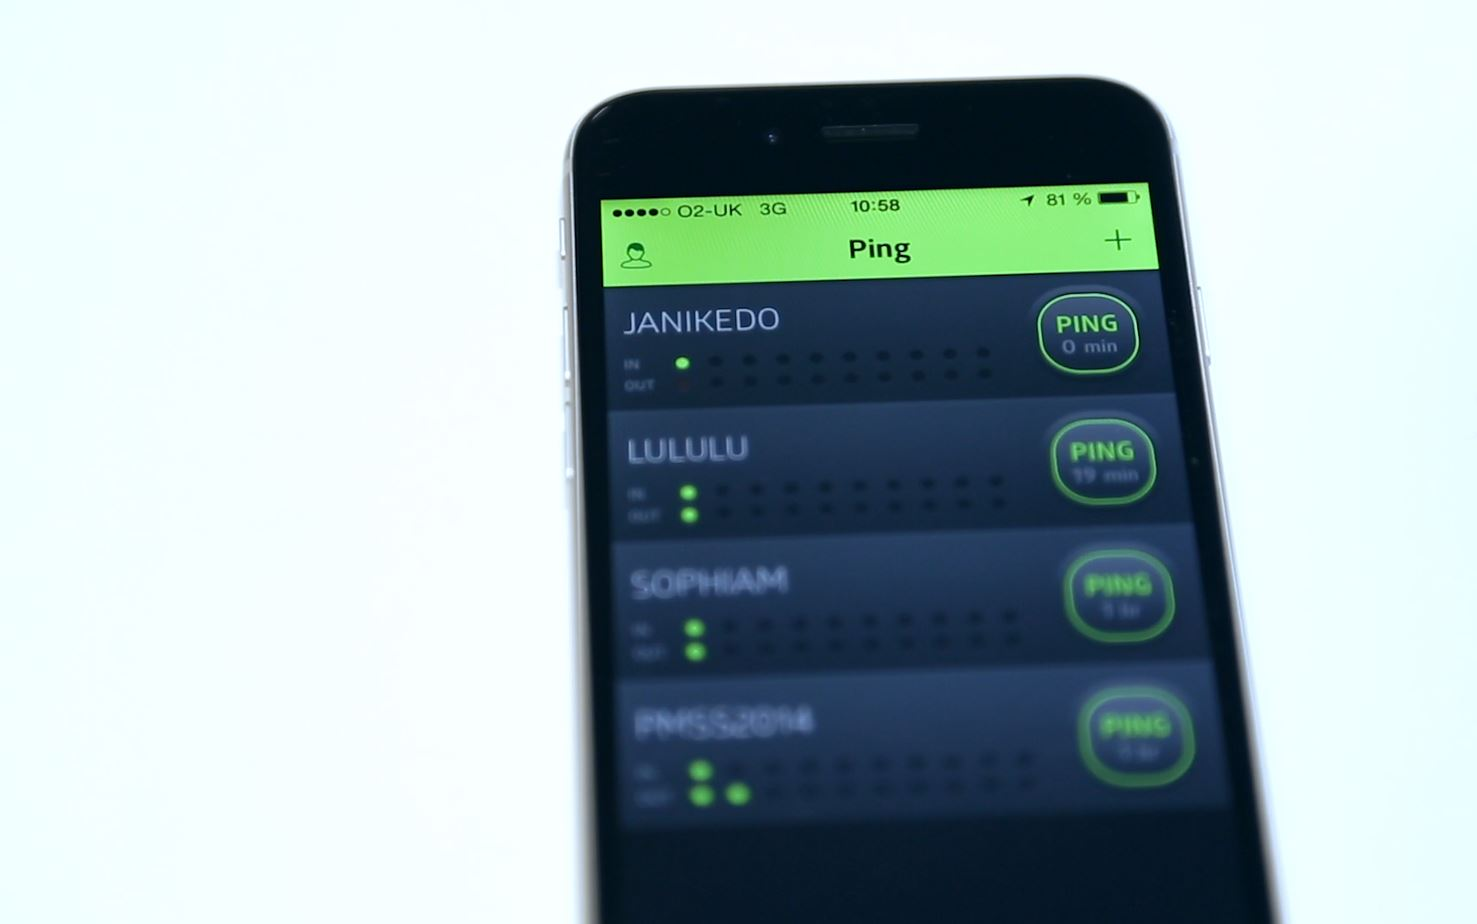 Tech Talk: Ping - The Smartphone App That Communicates Without Words